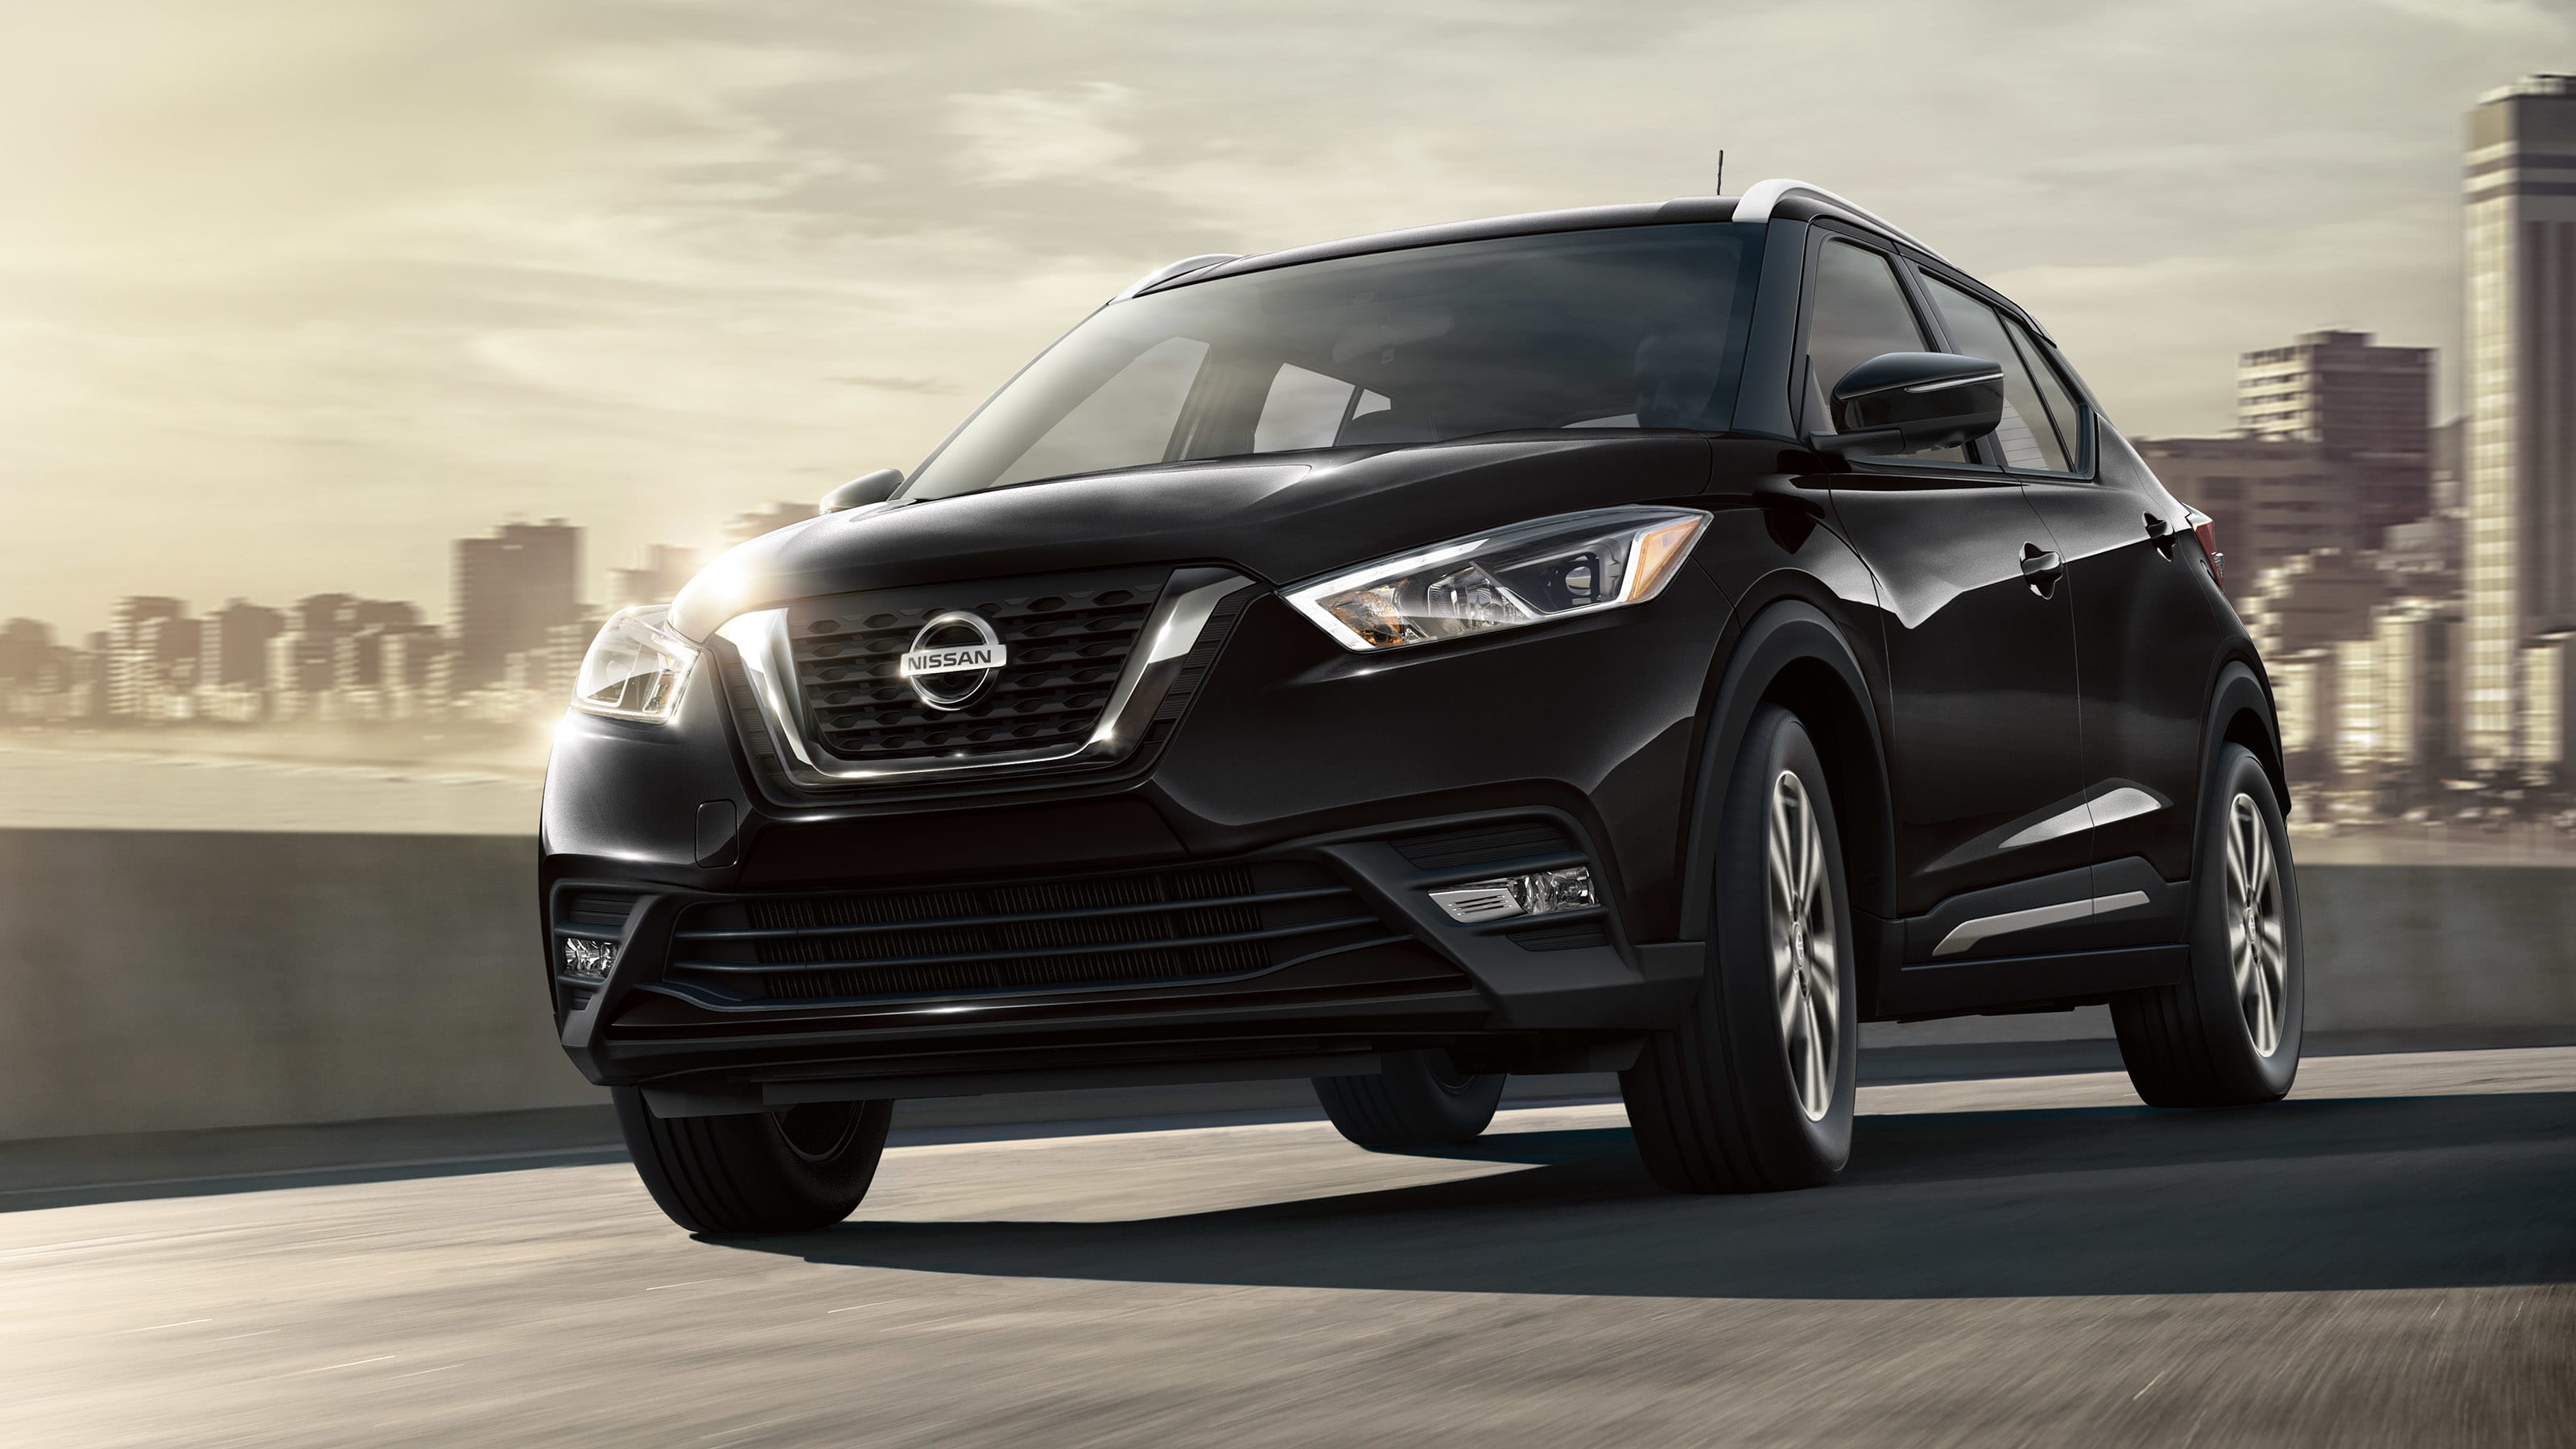 2019 Nissan Kicks Leasing near Woodbridge, VA